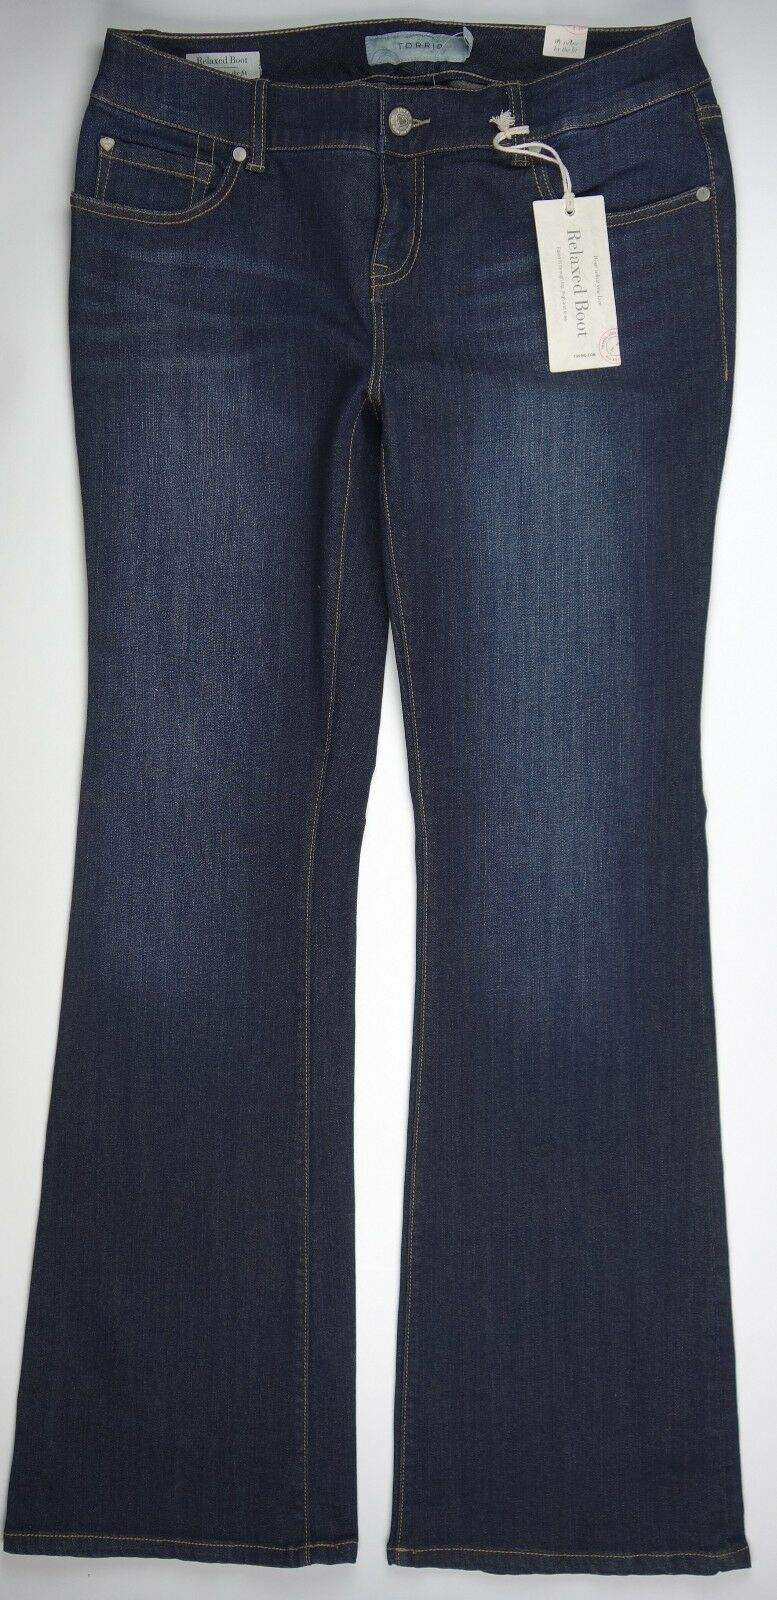 (.) TORRID  Womens  RELAXED BOOT bluee Moon Jeans  Size 10R NWT  64.50